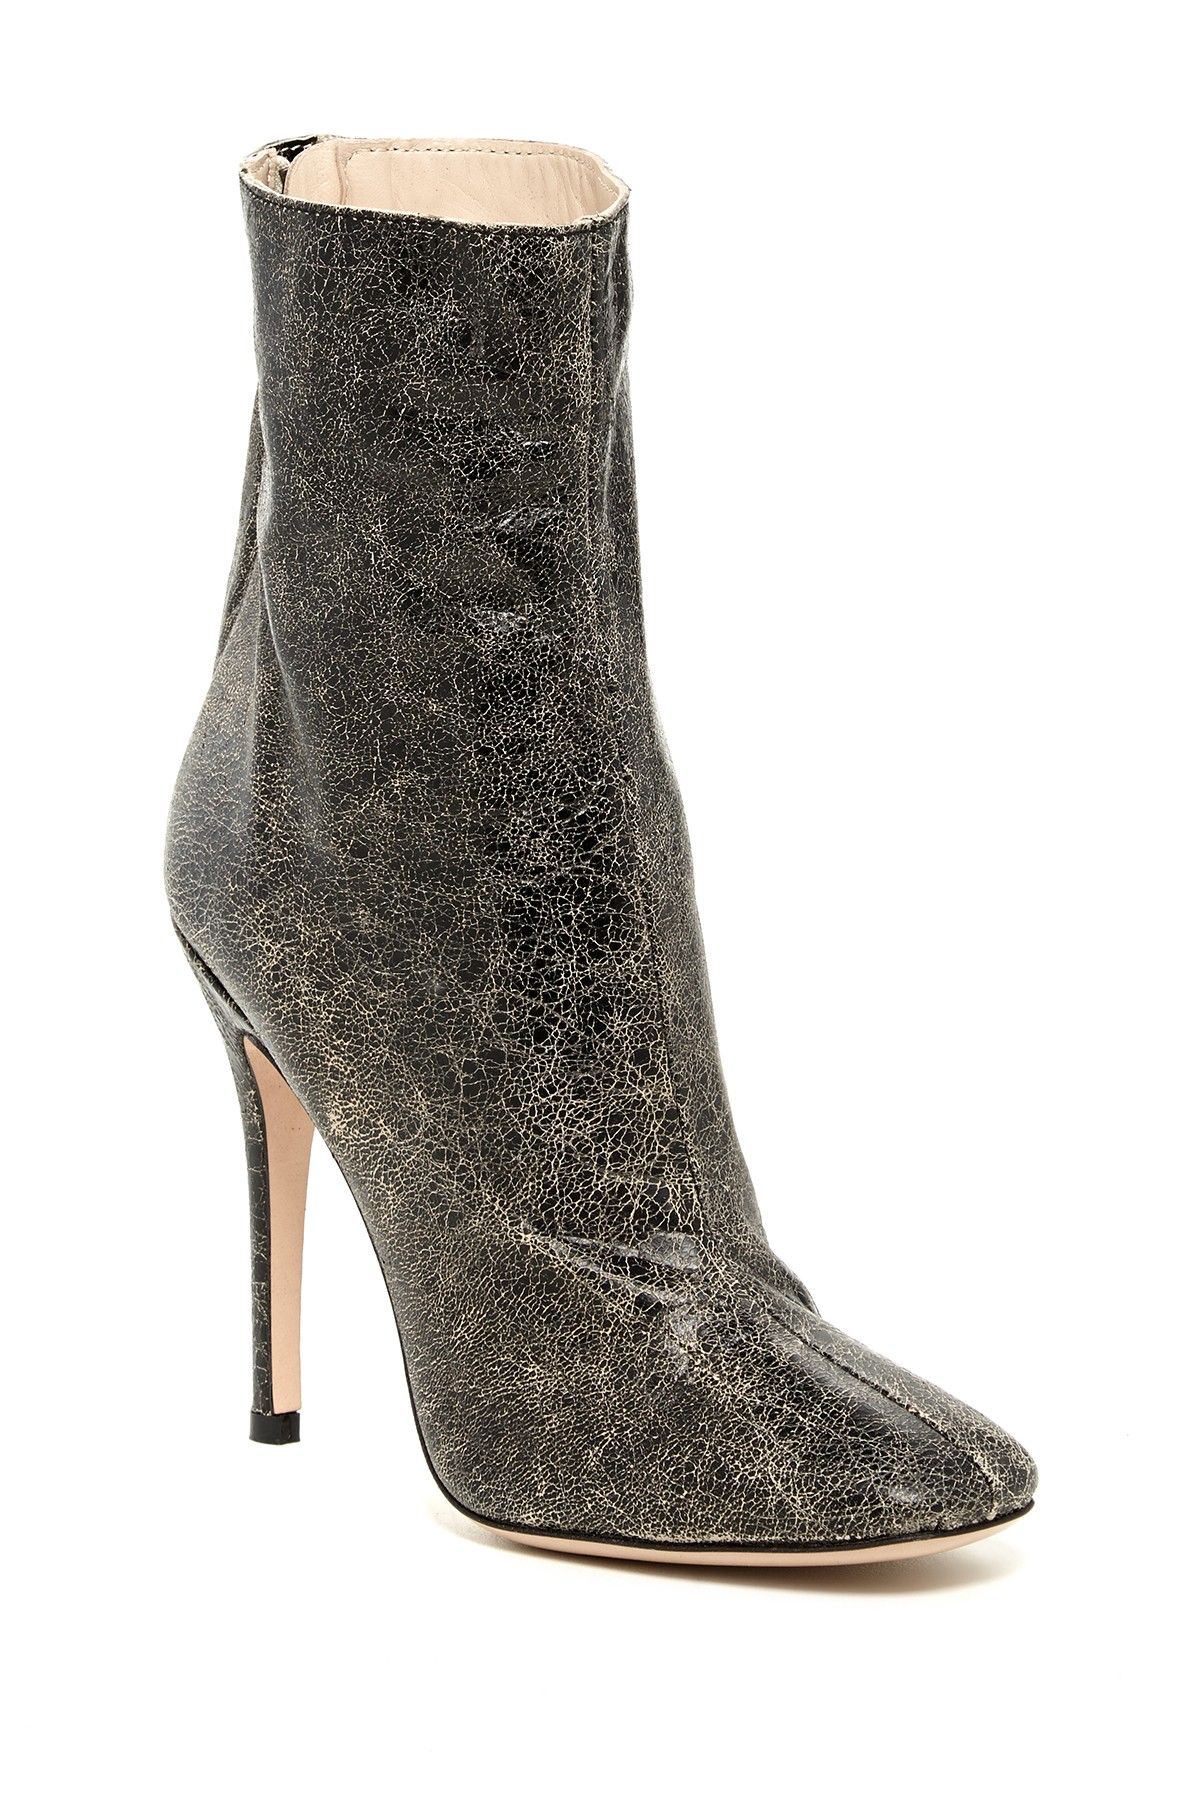 c41efe87e15 Love these Diesel Cracked Heel Booties